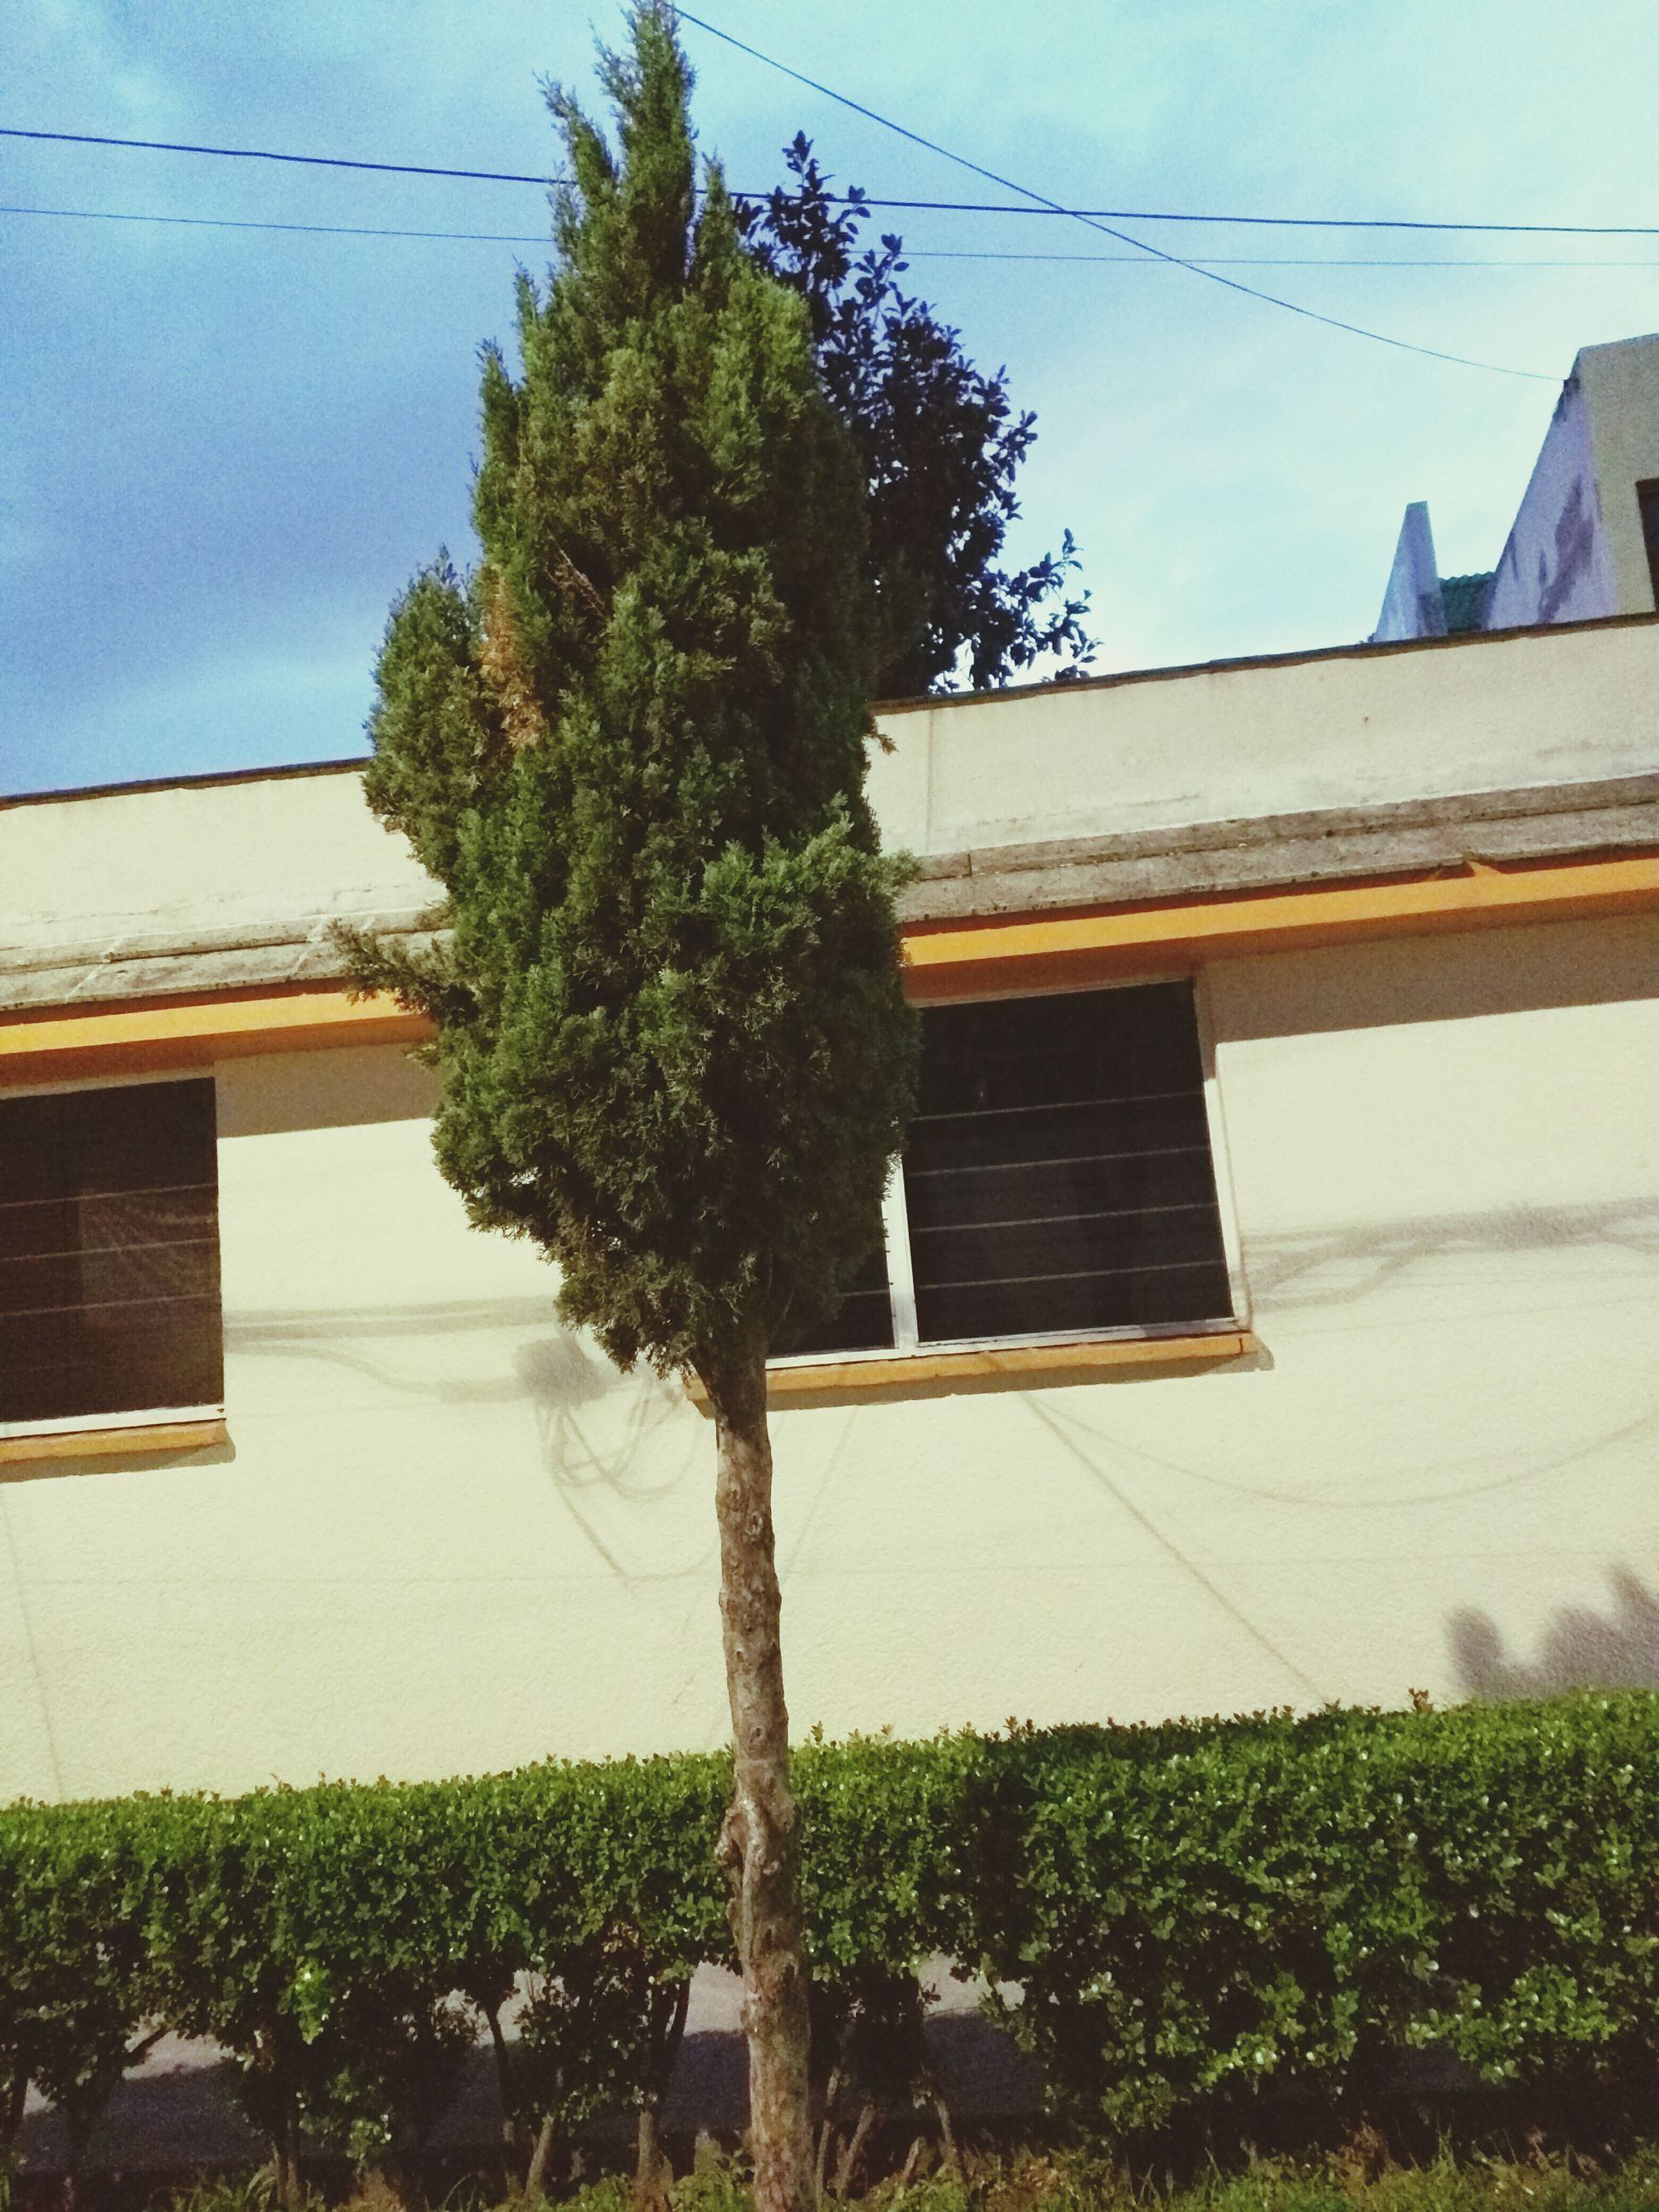 building exterior, built structure, architecture, house, tree, sky, growth, plant, residential structure, blue, grass, power line, sunlight, green color, day, no people, residential building, outdoors, nature, shadow